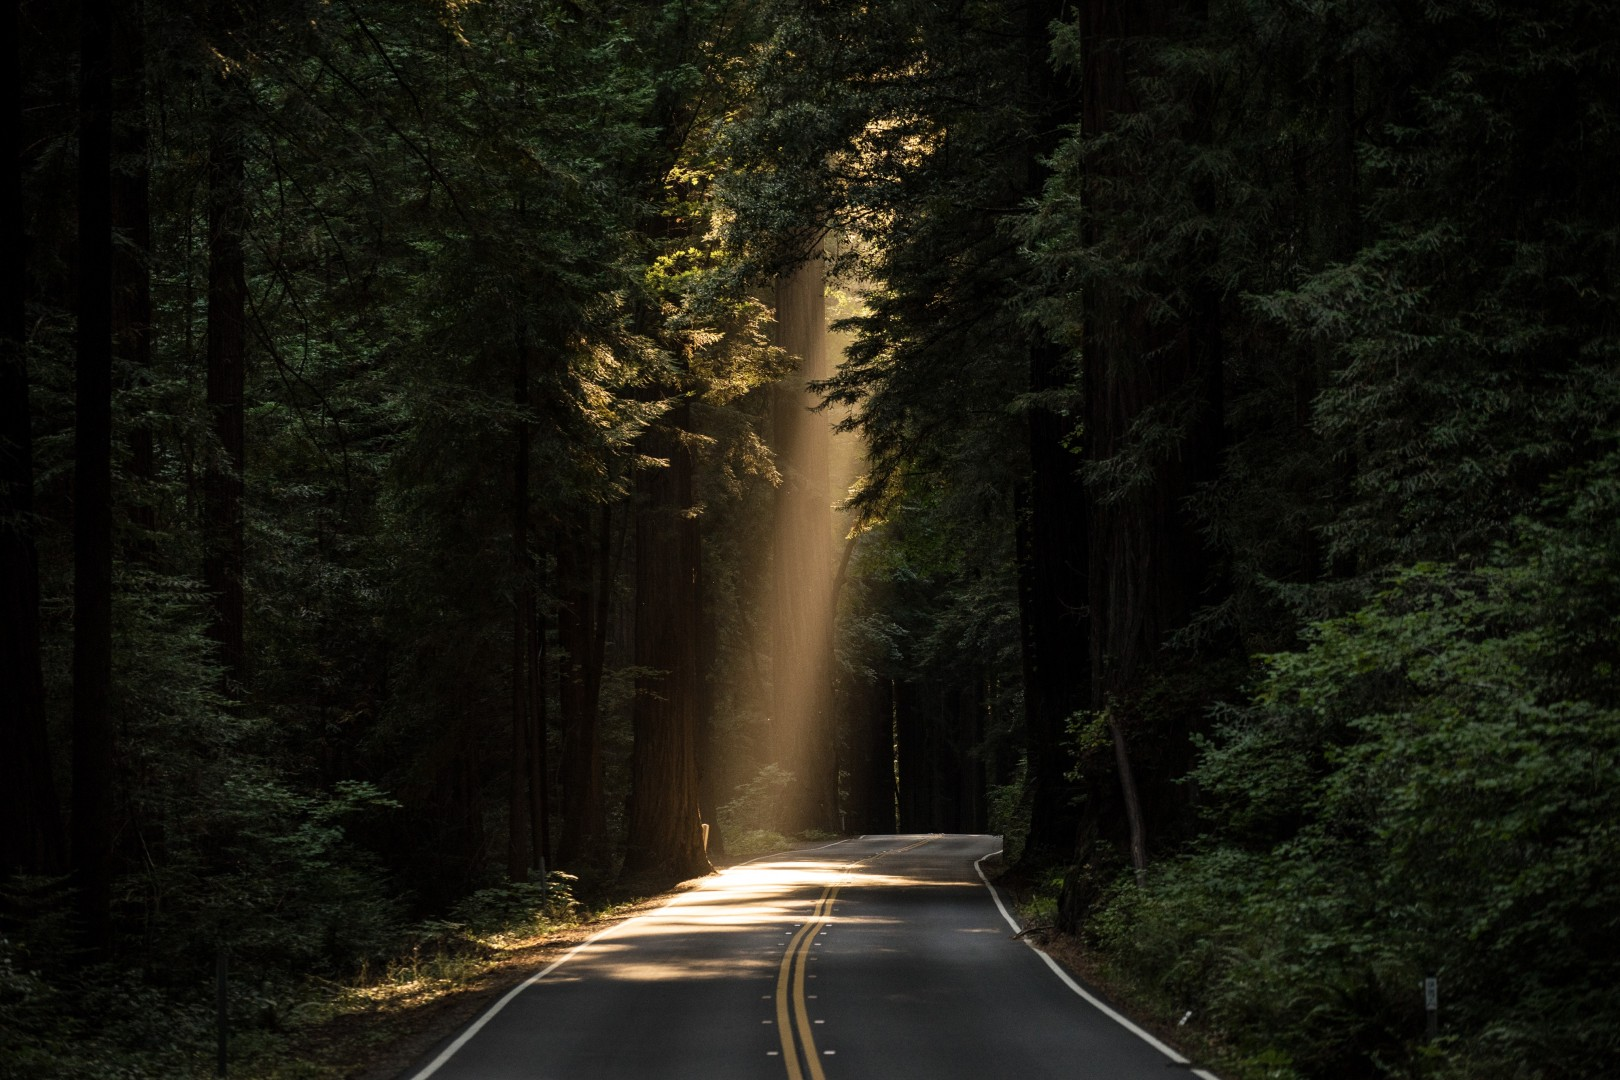 road with a ray of light coming down